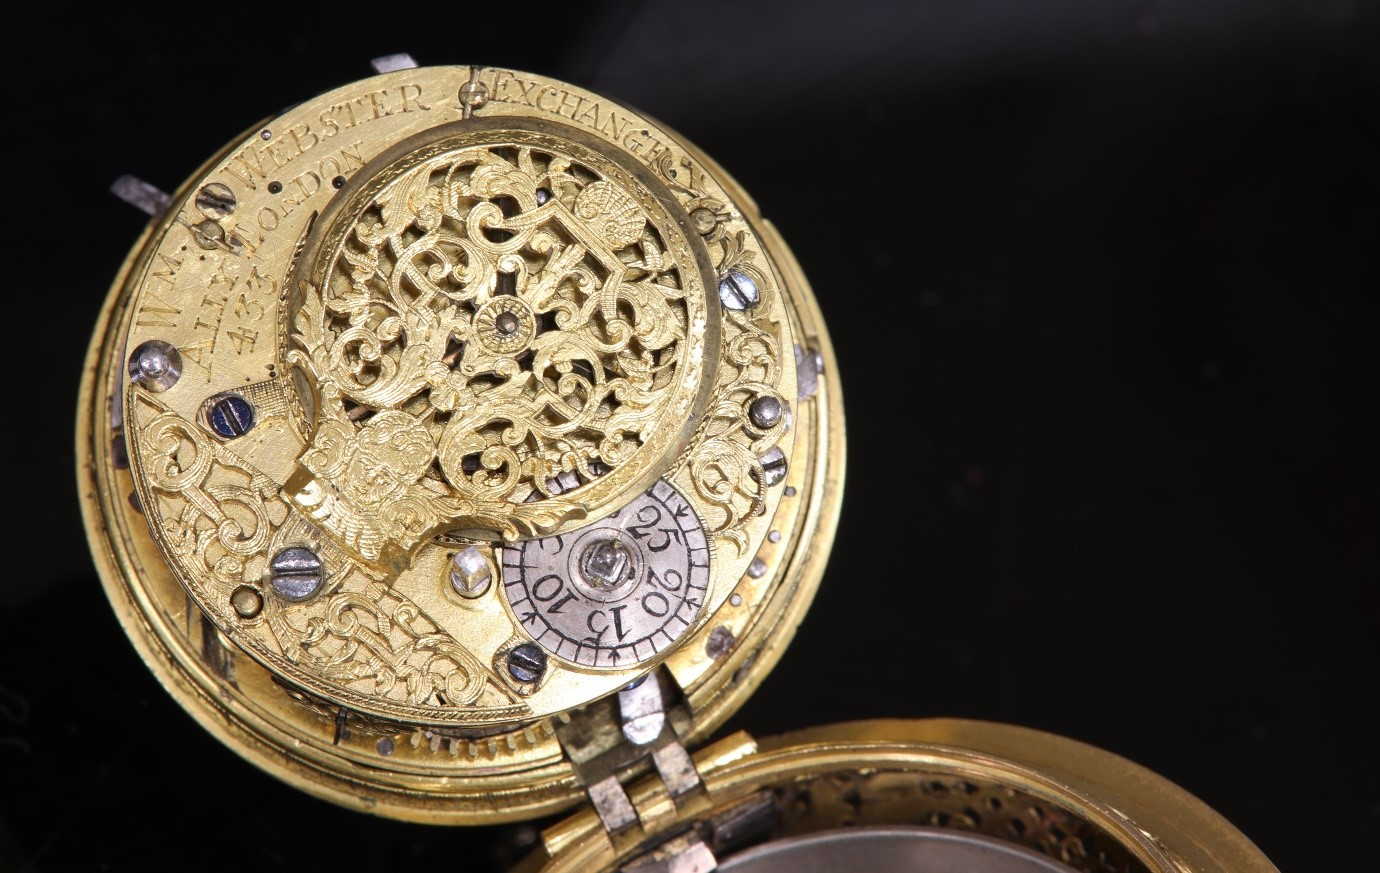 Image of detail of watch by William Webster